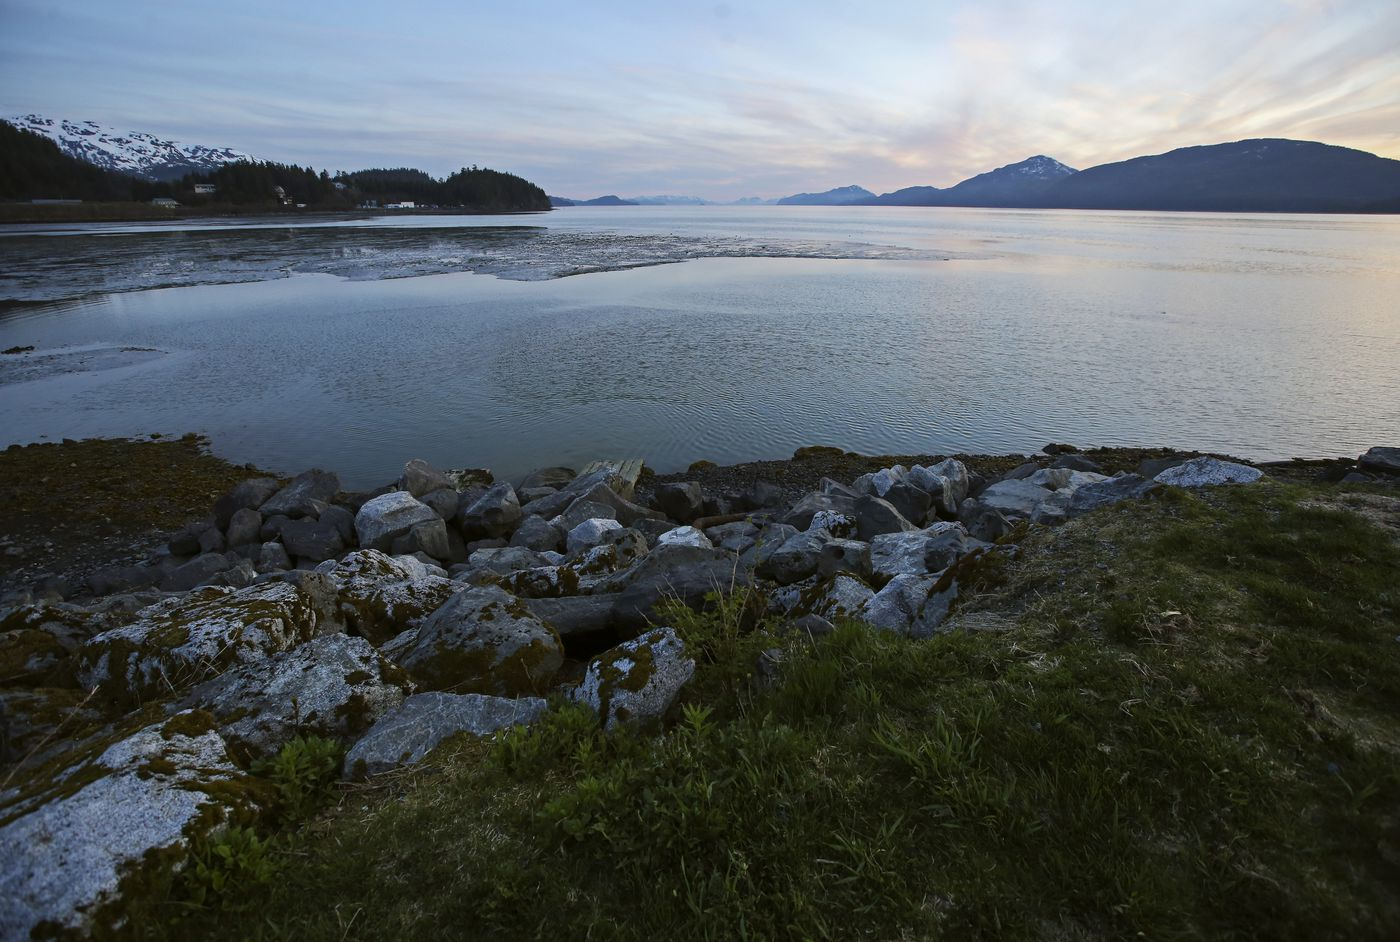 Orca Inlet, seen from Cordova's breakwater, on Tuesday, May 18, 2021. (Emily Mesner / ADN)